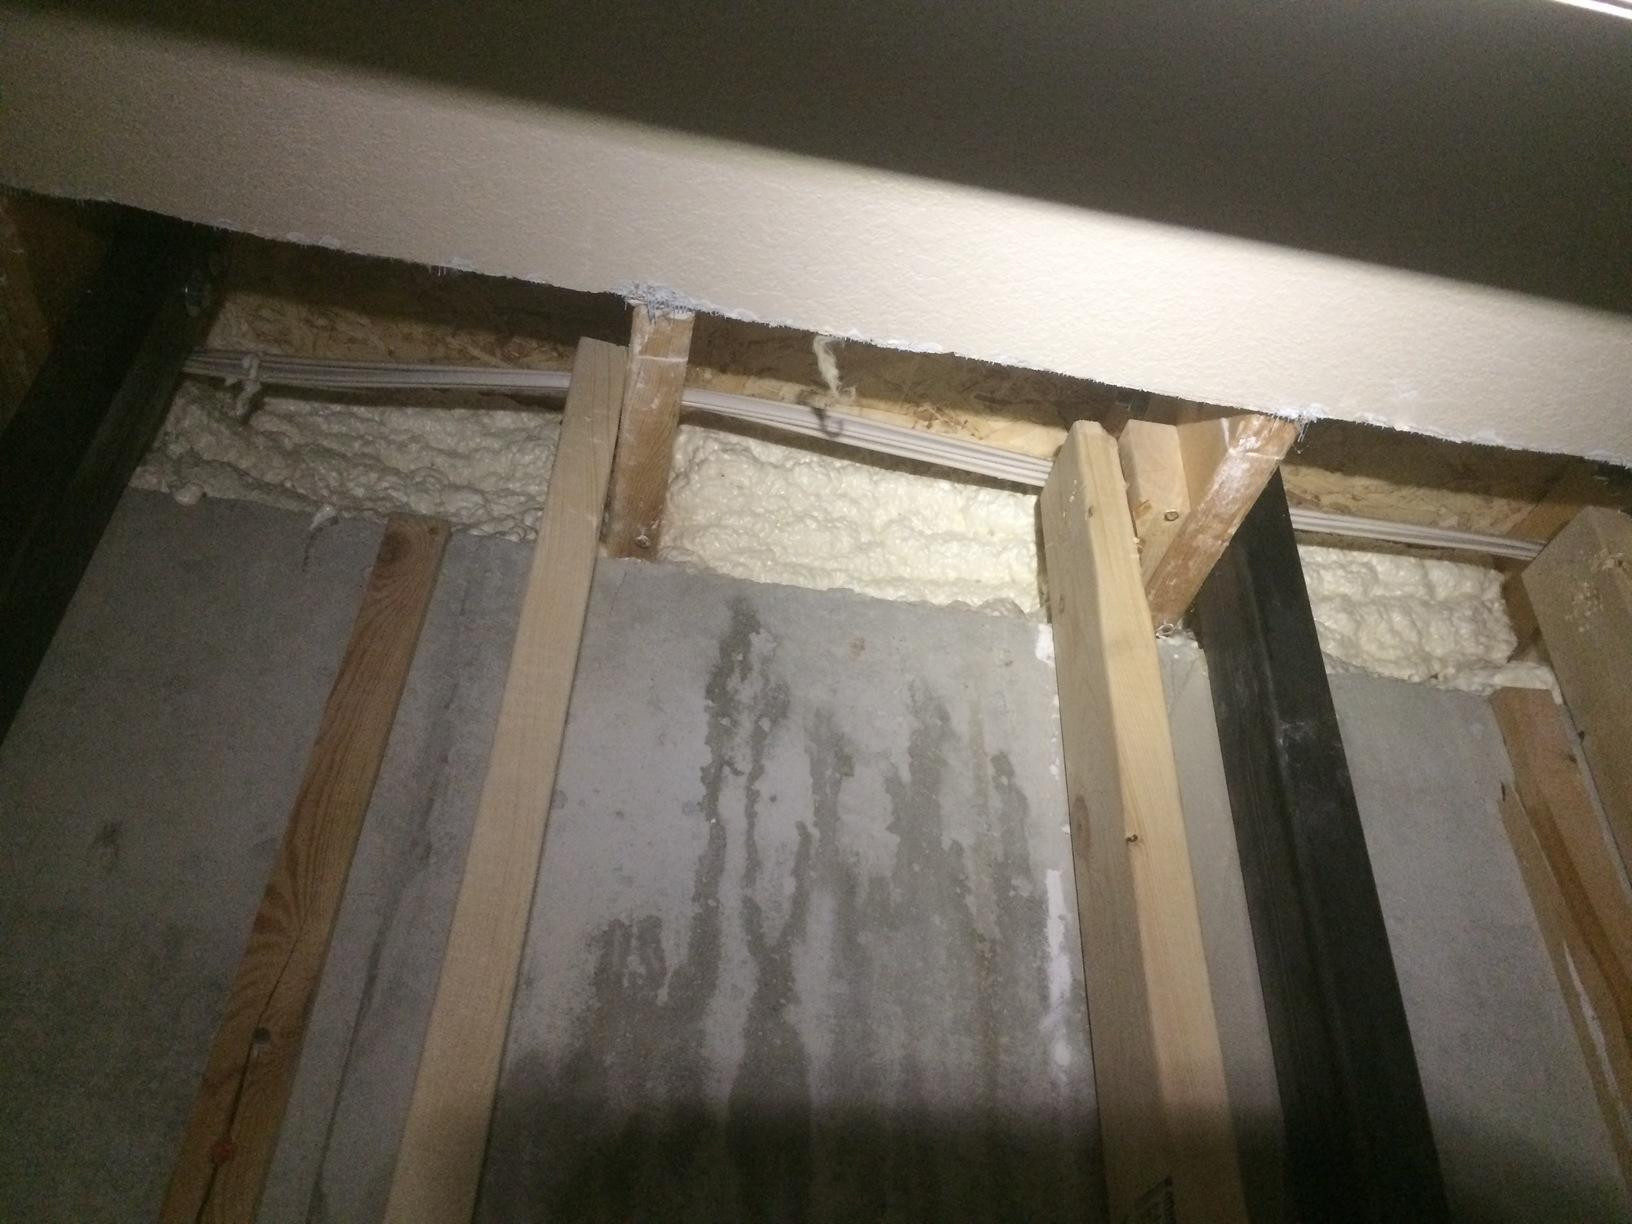 Insulating Rim Joists with Spray Foam in Fond du Lac, WI - After Photo